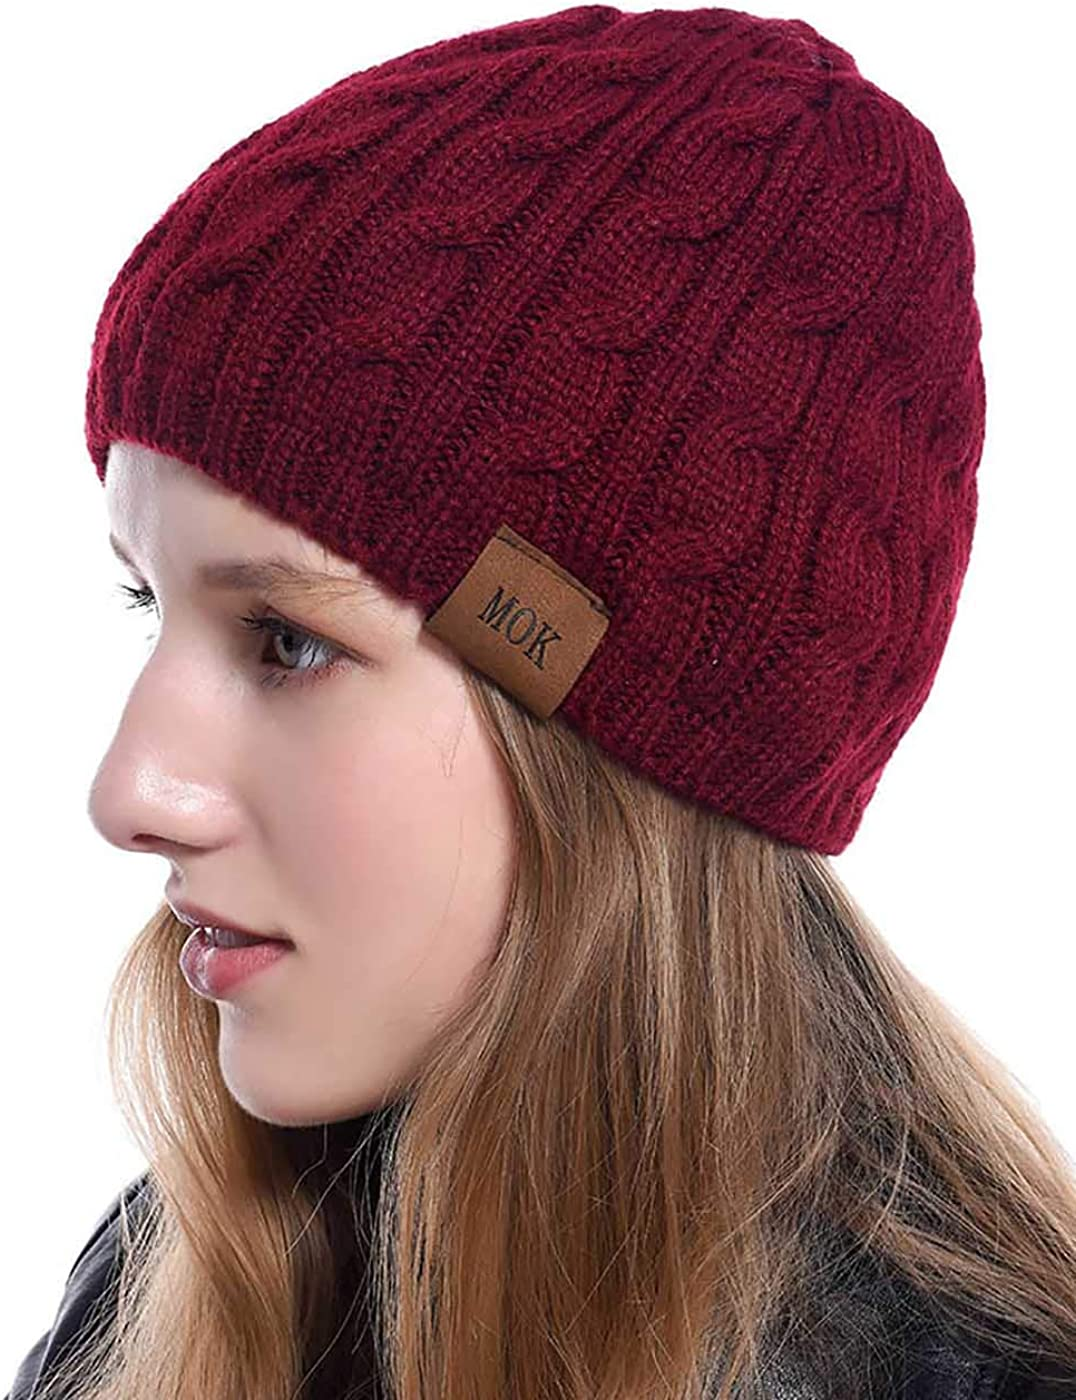 Woeoe Cable Knitted Beanie Red Chunky Ribbed Skull Cap Winter Warm Skully Hat for Women and Girls